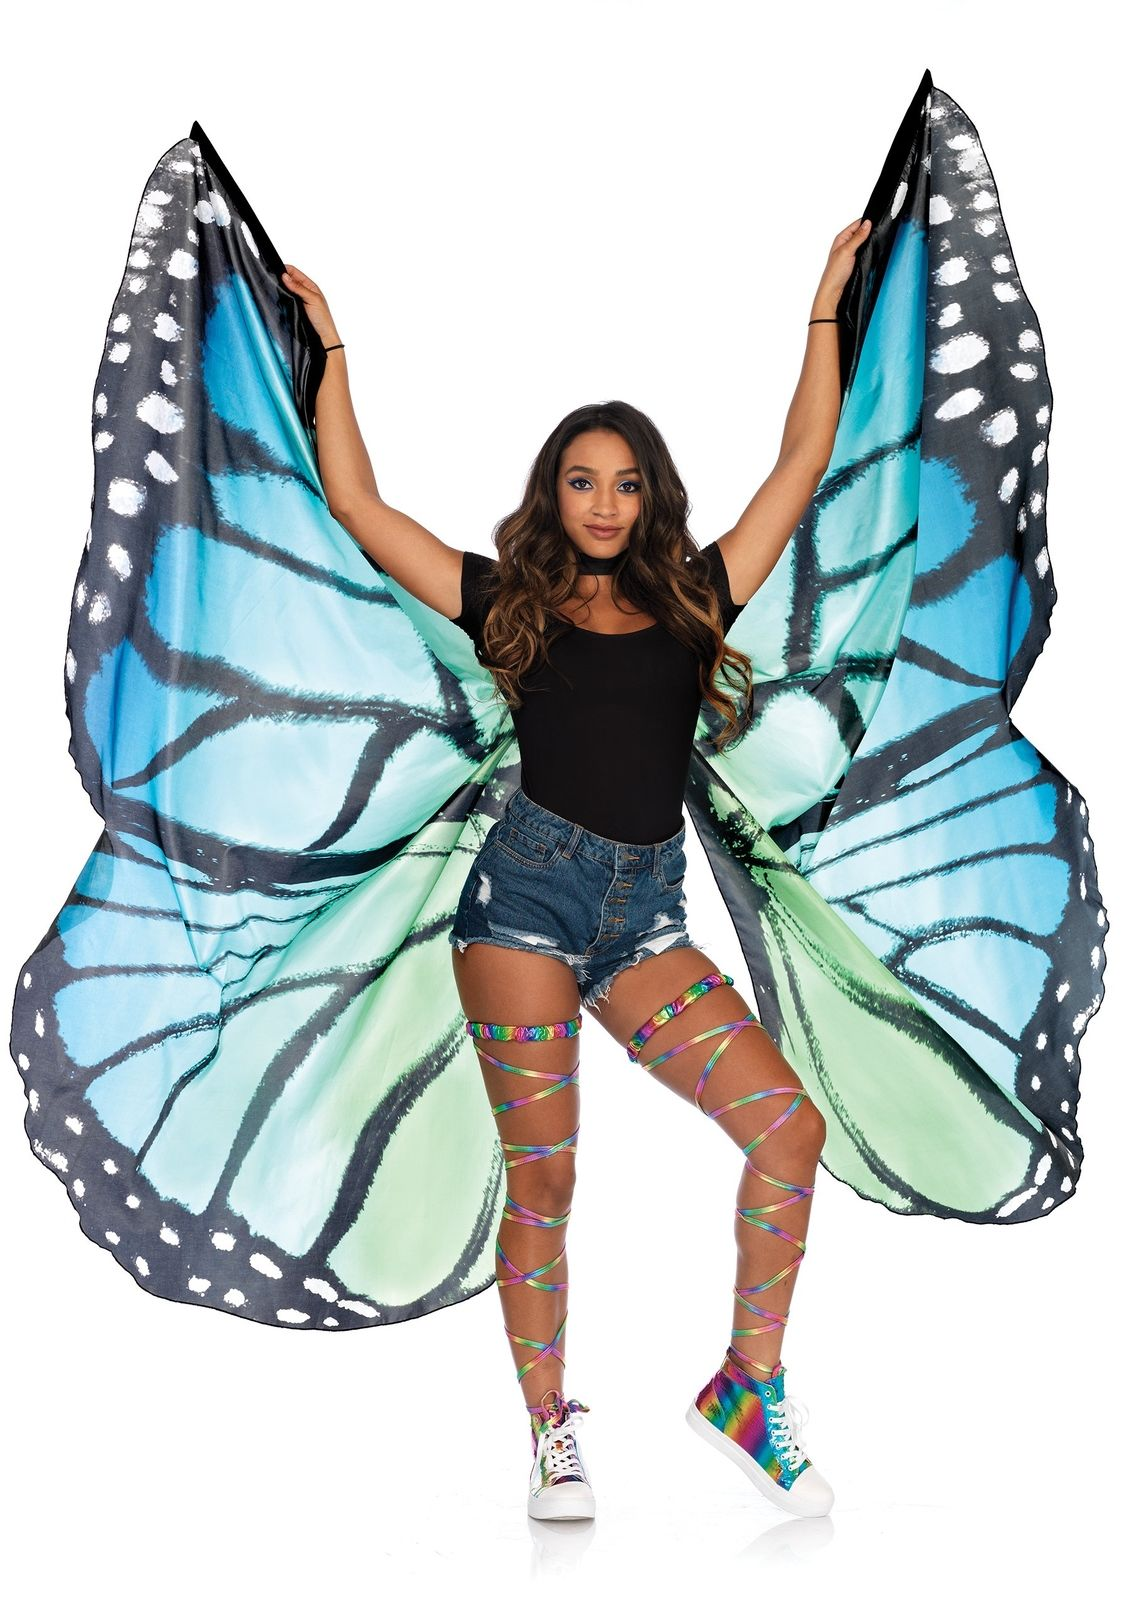 BUTTERFLY -  FESTIVAL BUTTERFLY WING HALTER CAPE WITH WRIST STRAPS AND SUPPORT STICKS - BLUE